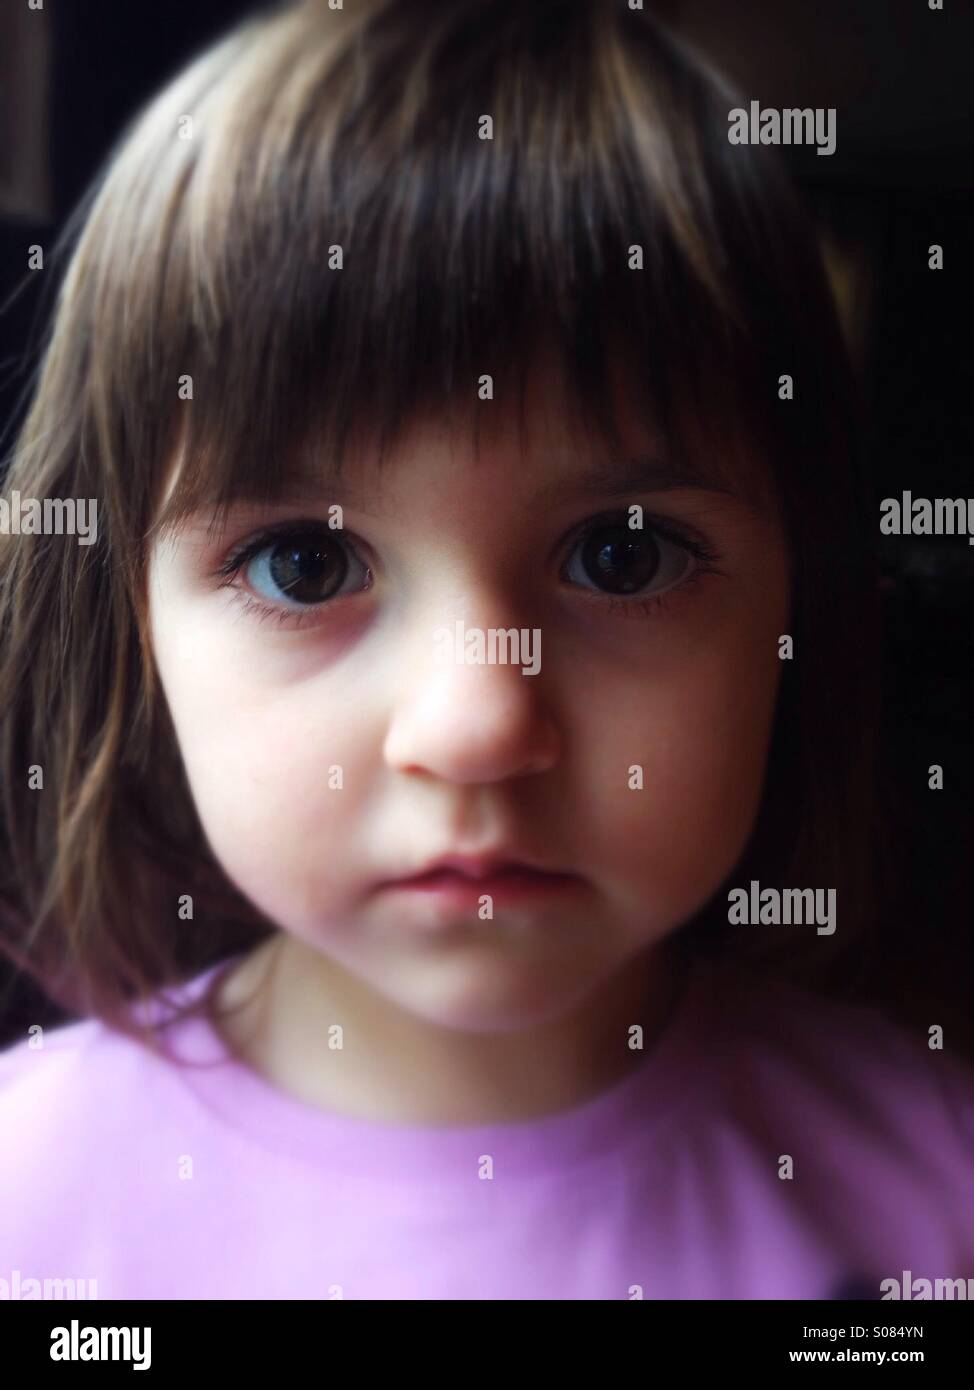 Caucasian toddler girl portrait - Stock Image